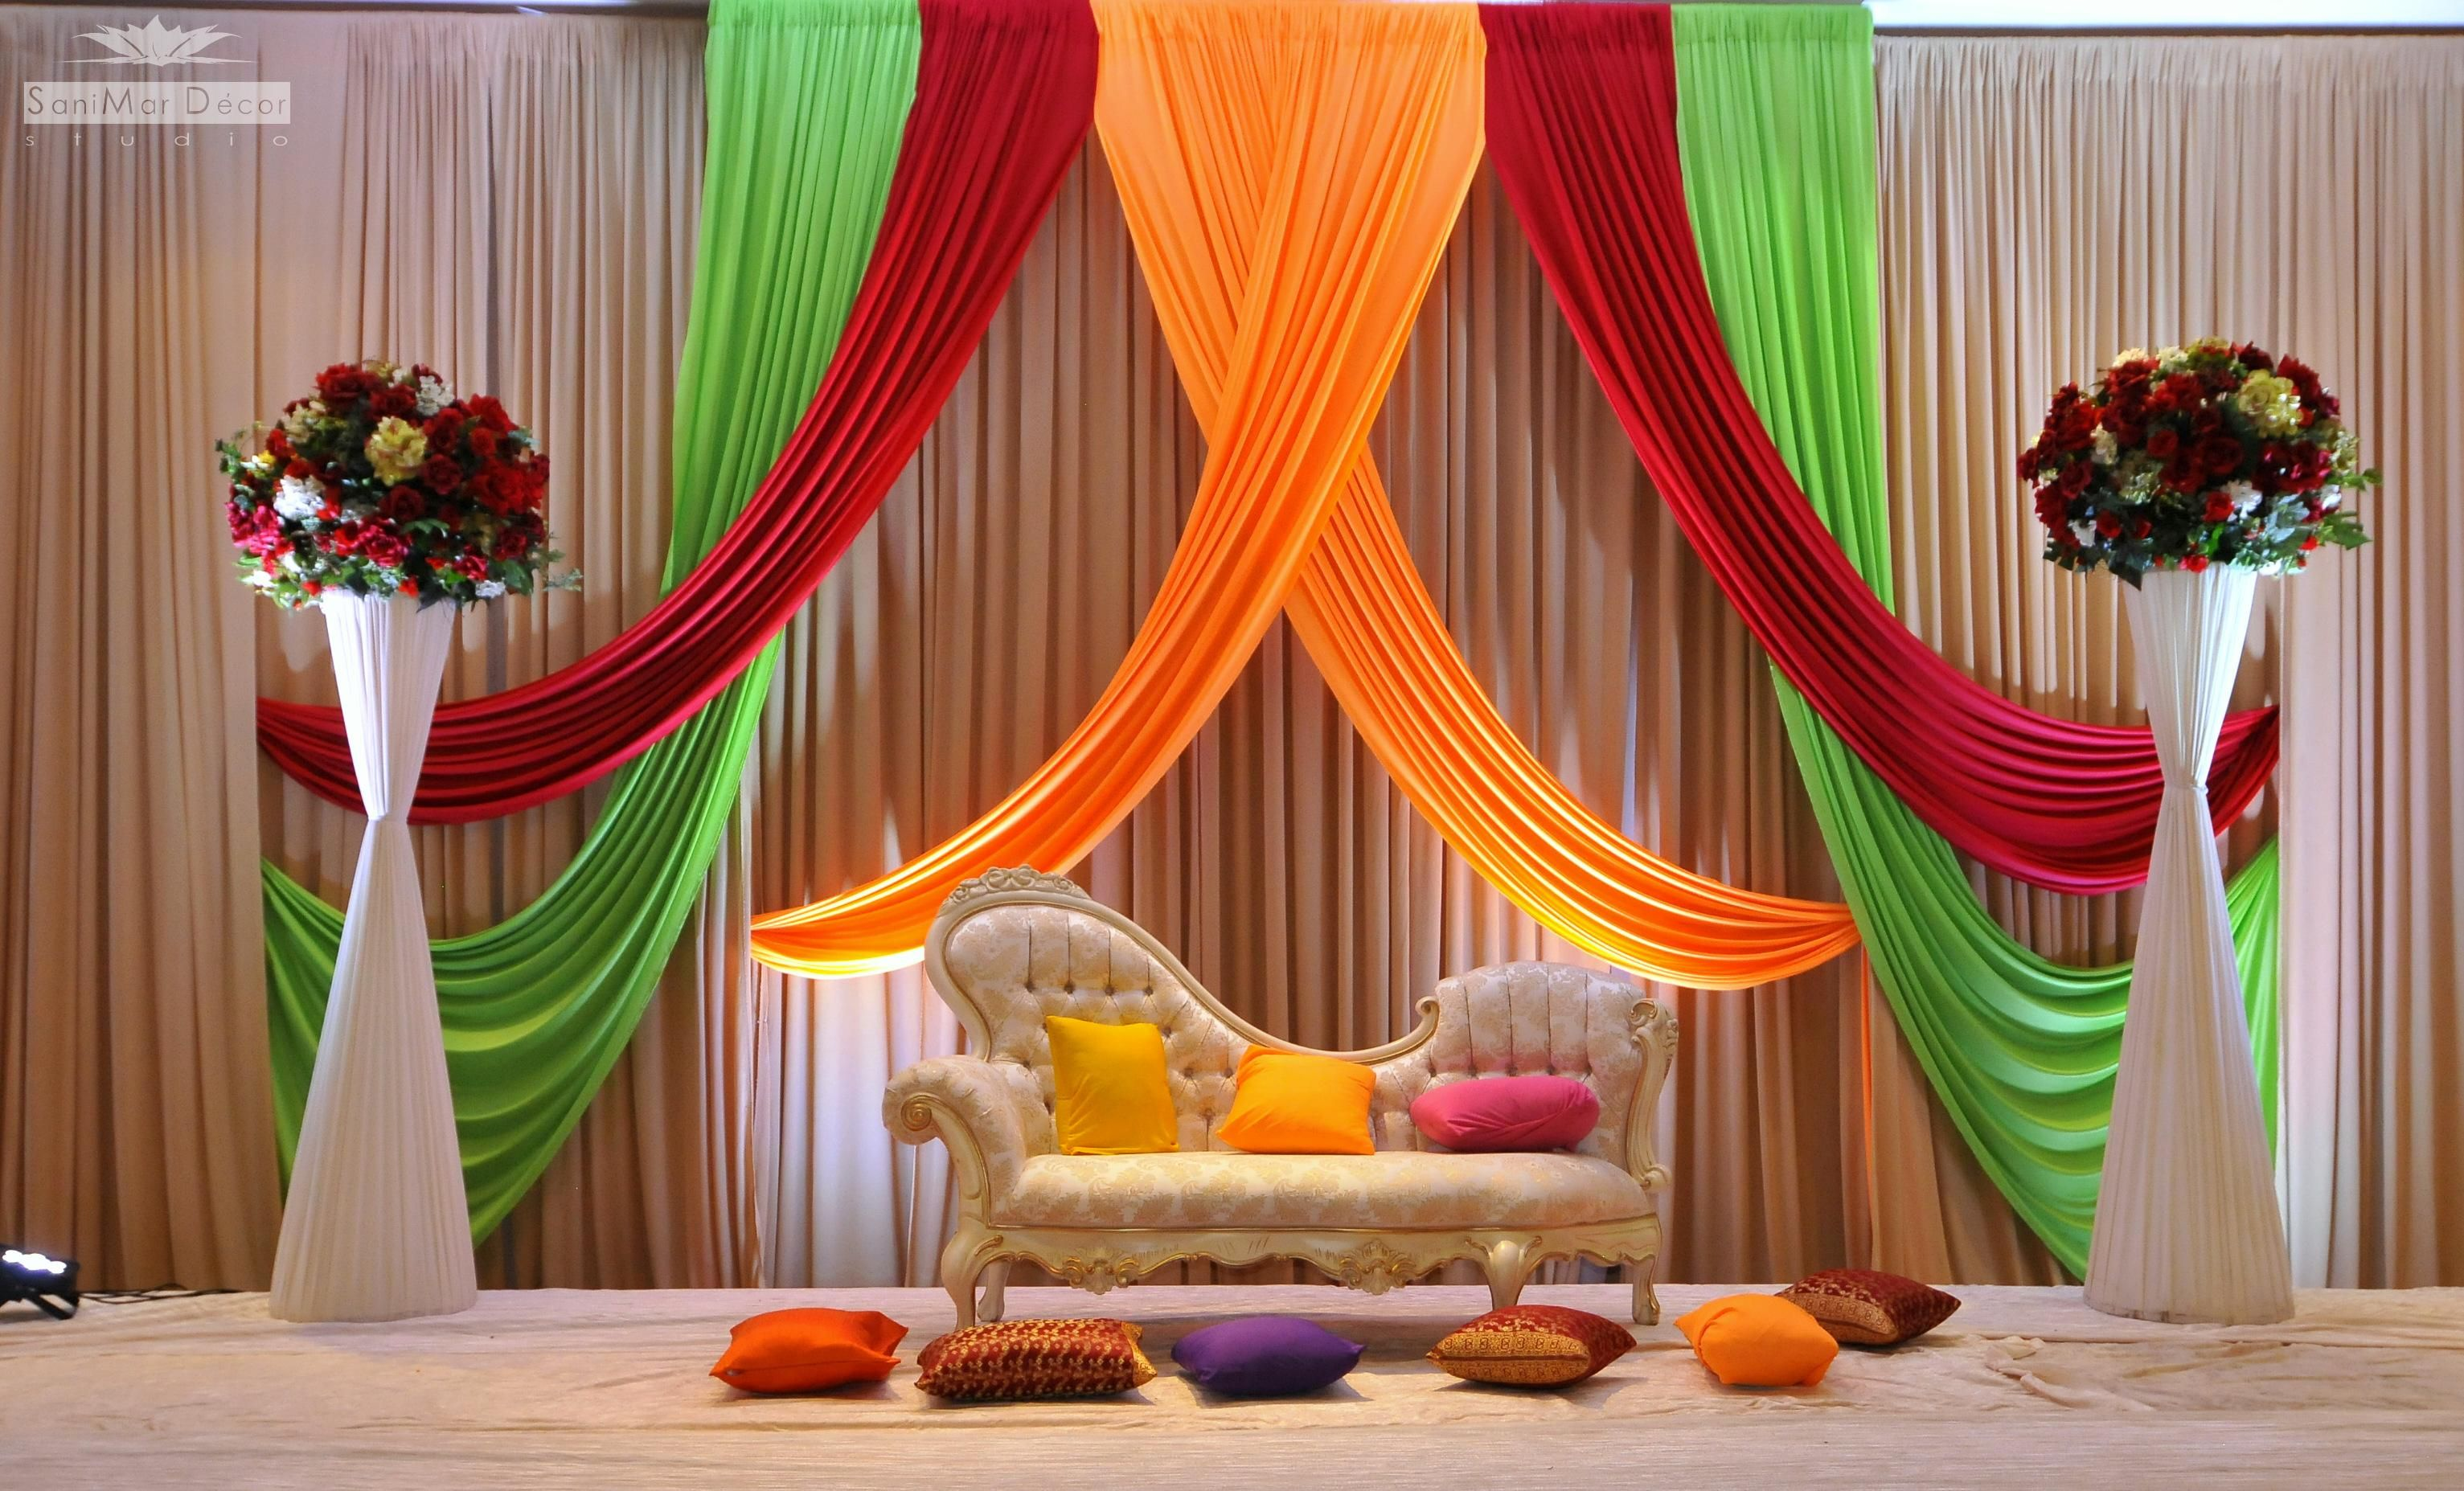 Wedding stage decoration wedding decorations natural for At home wedding decoration ideas